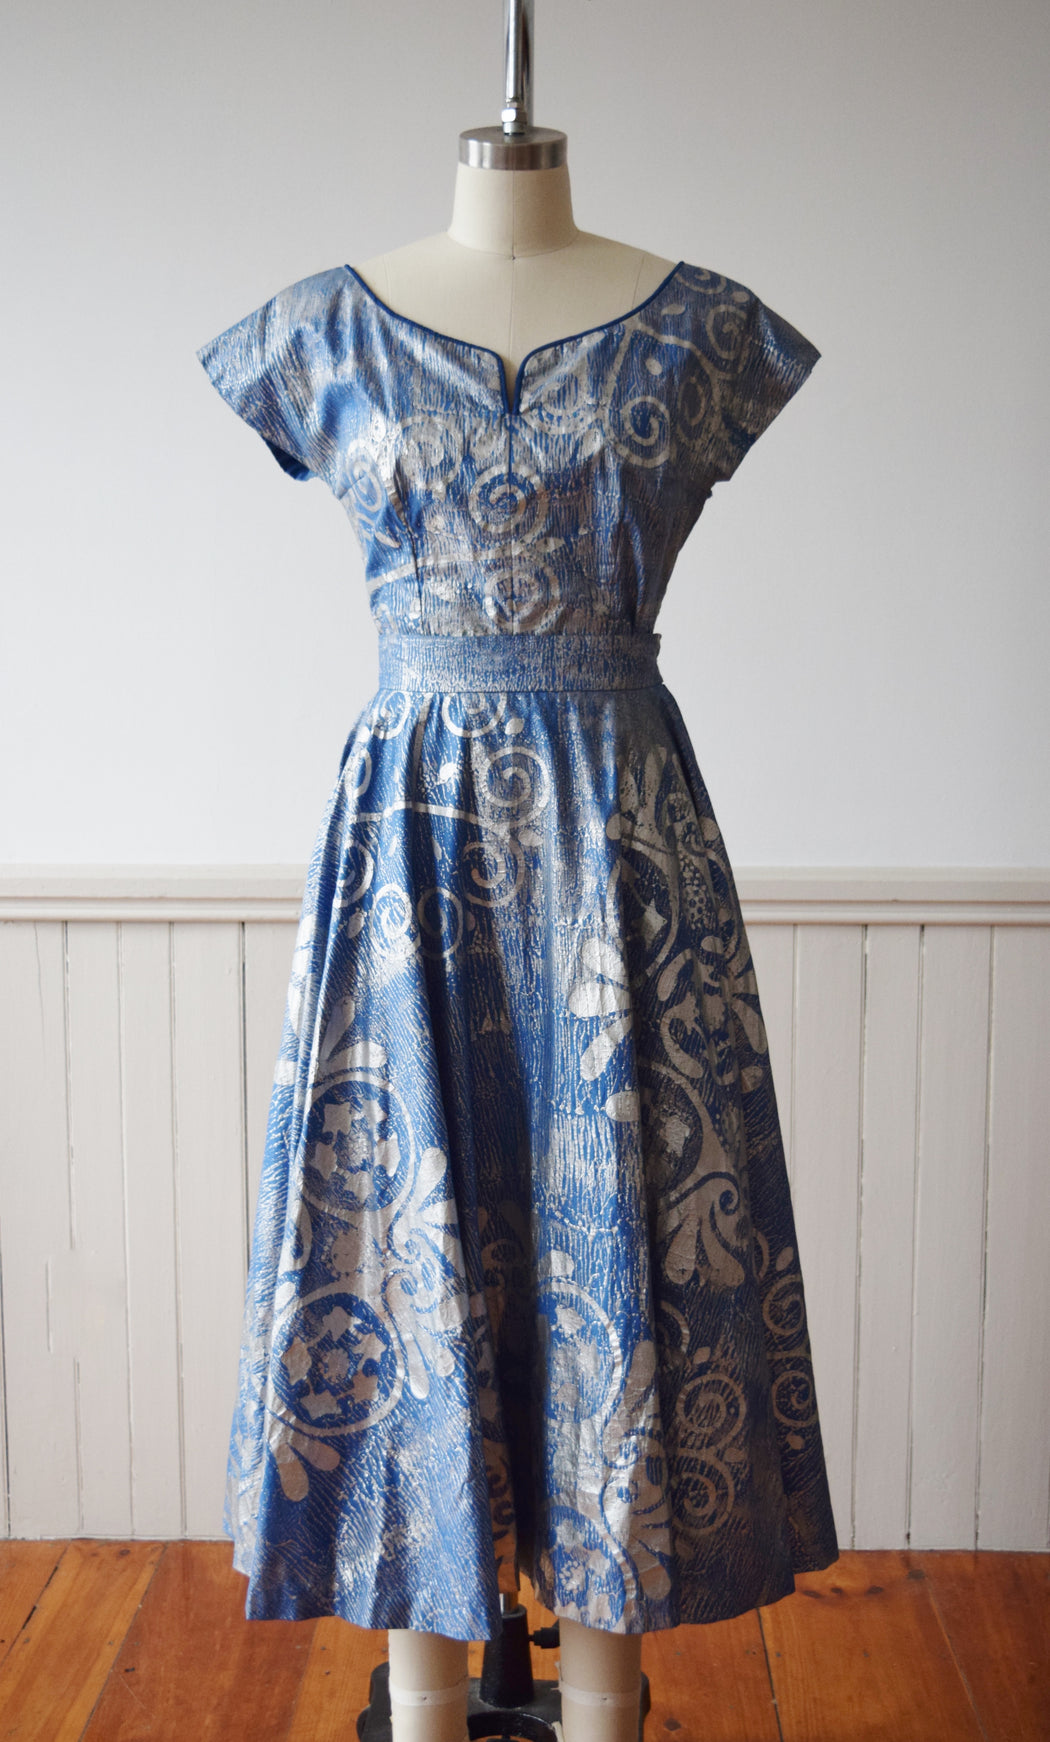 1950s Silver Block Printed Textile Dress Set by the Tapleys | Retailed at Frost. Bros. | XS